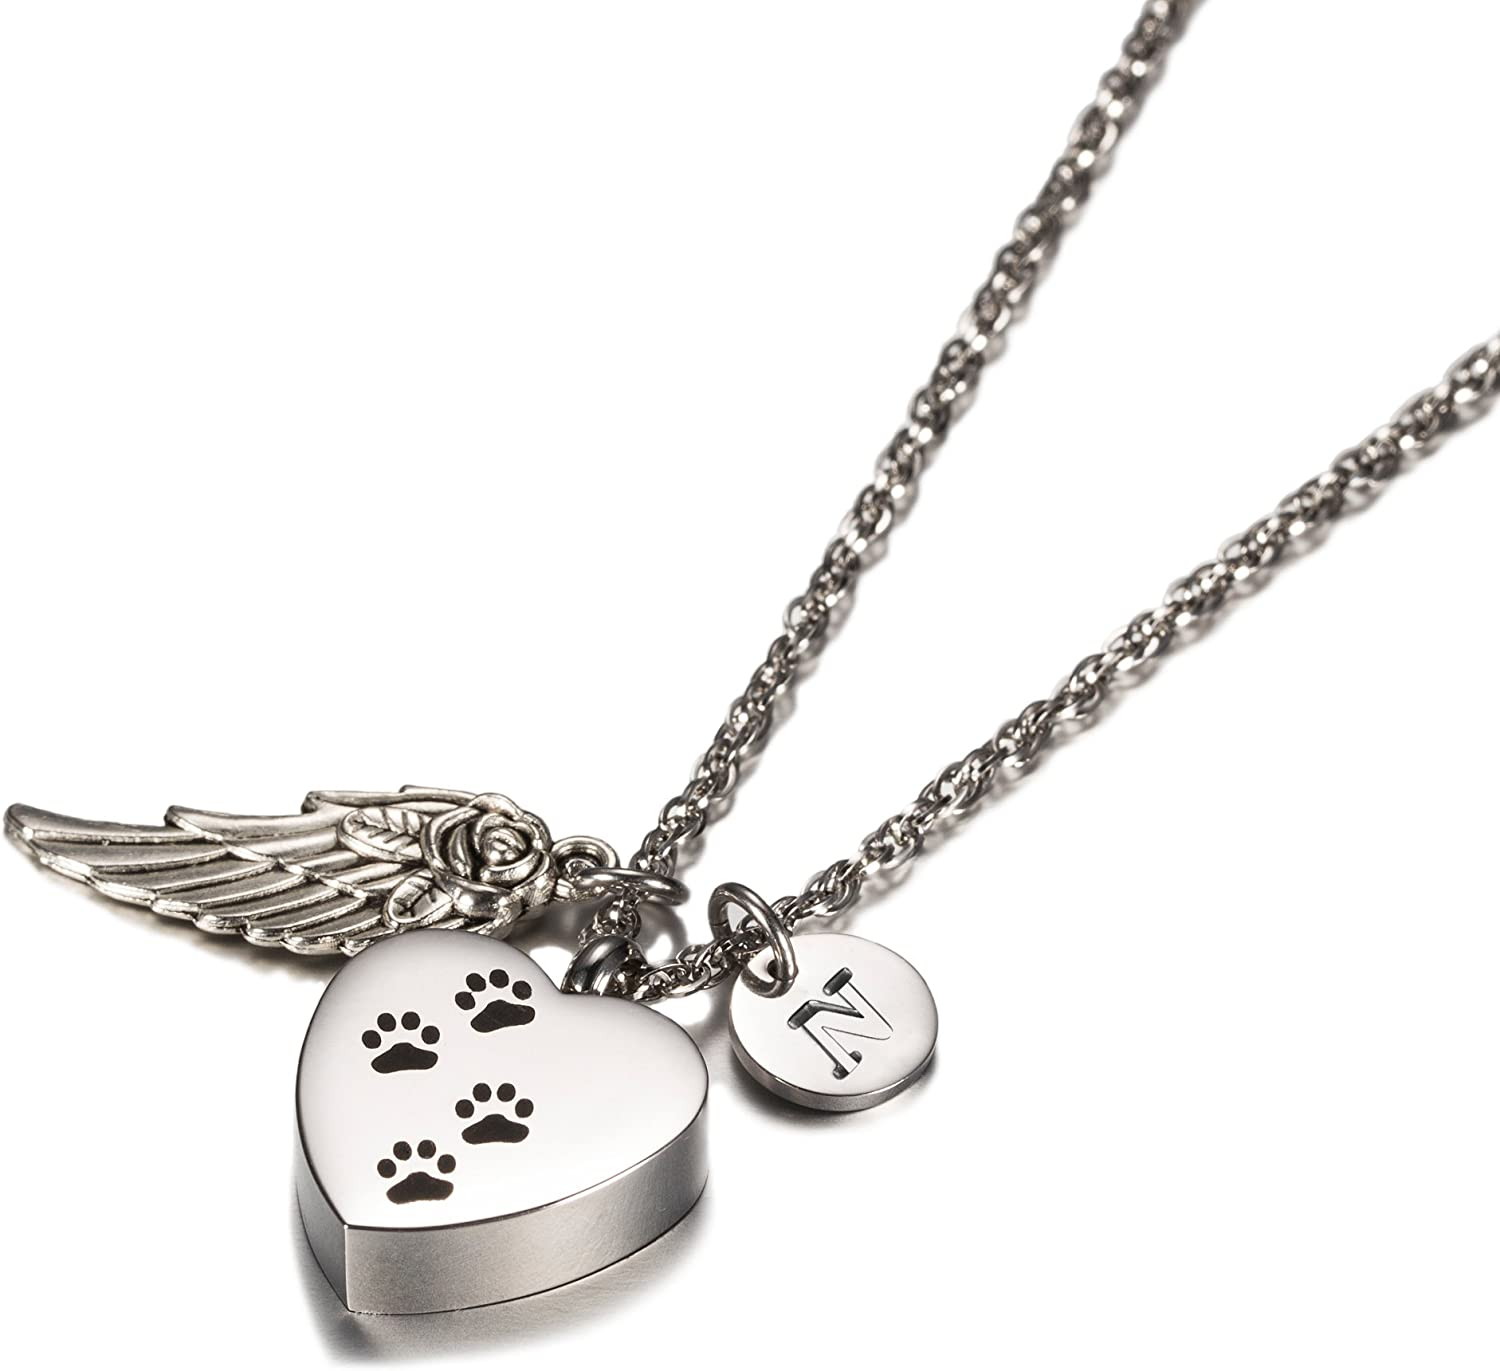 Dog Paw Print Heart with Angel Wing Charm Initial Necklace Pet Memorial Ashes Holder Keepsake by AMIST(N)